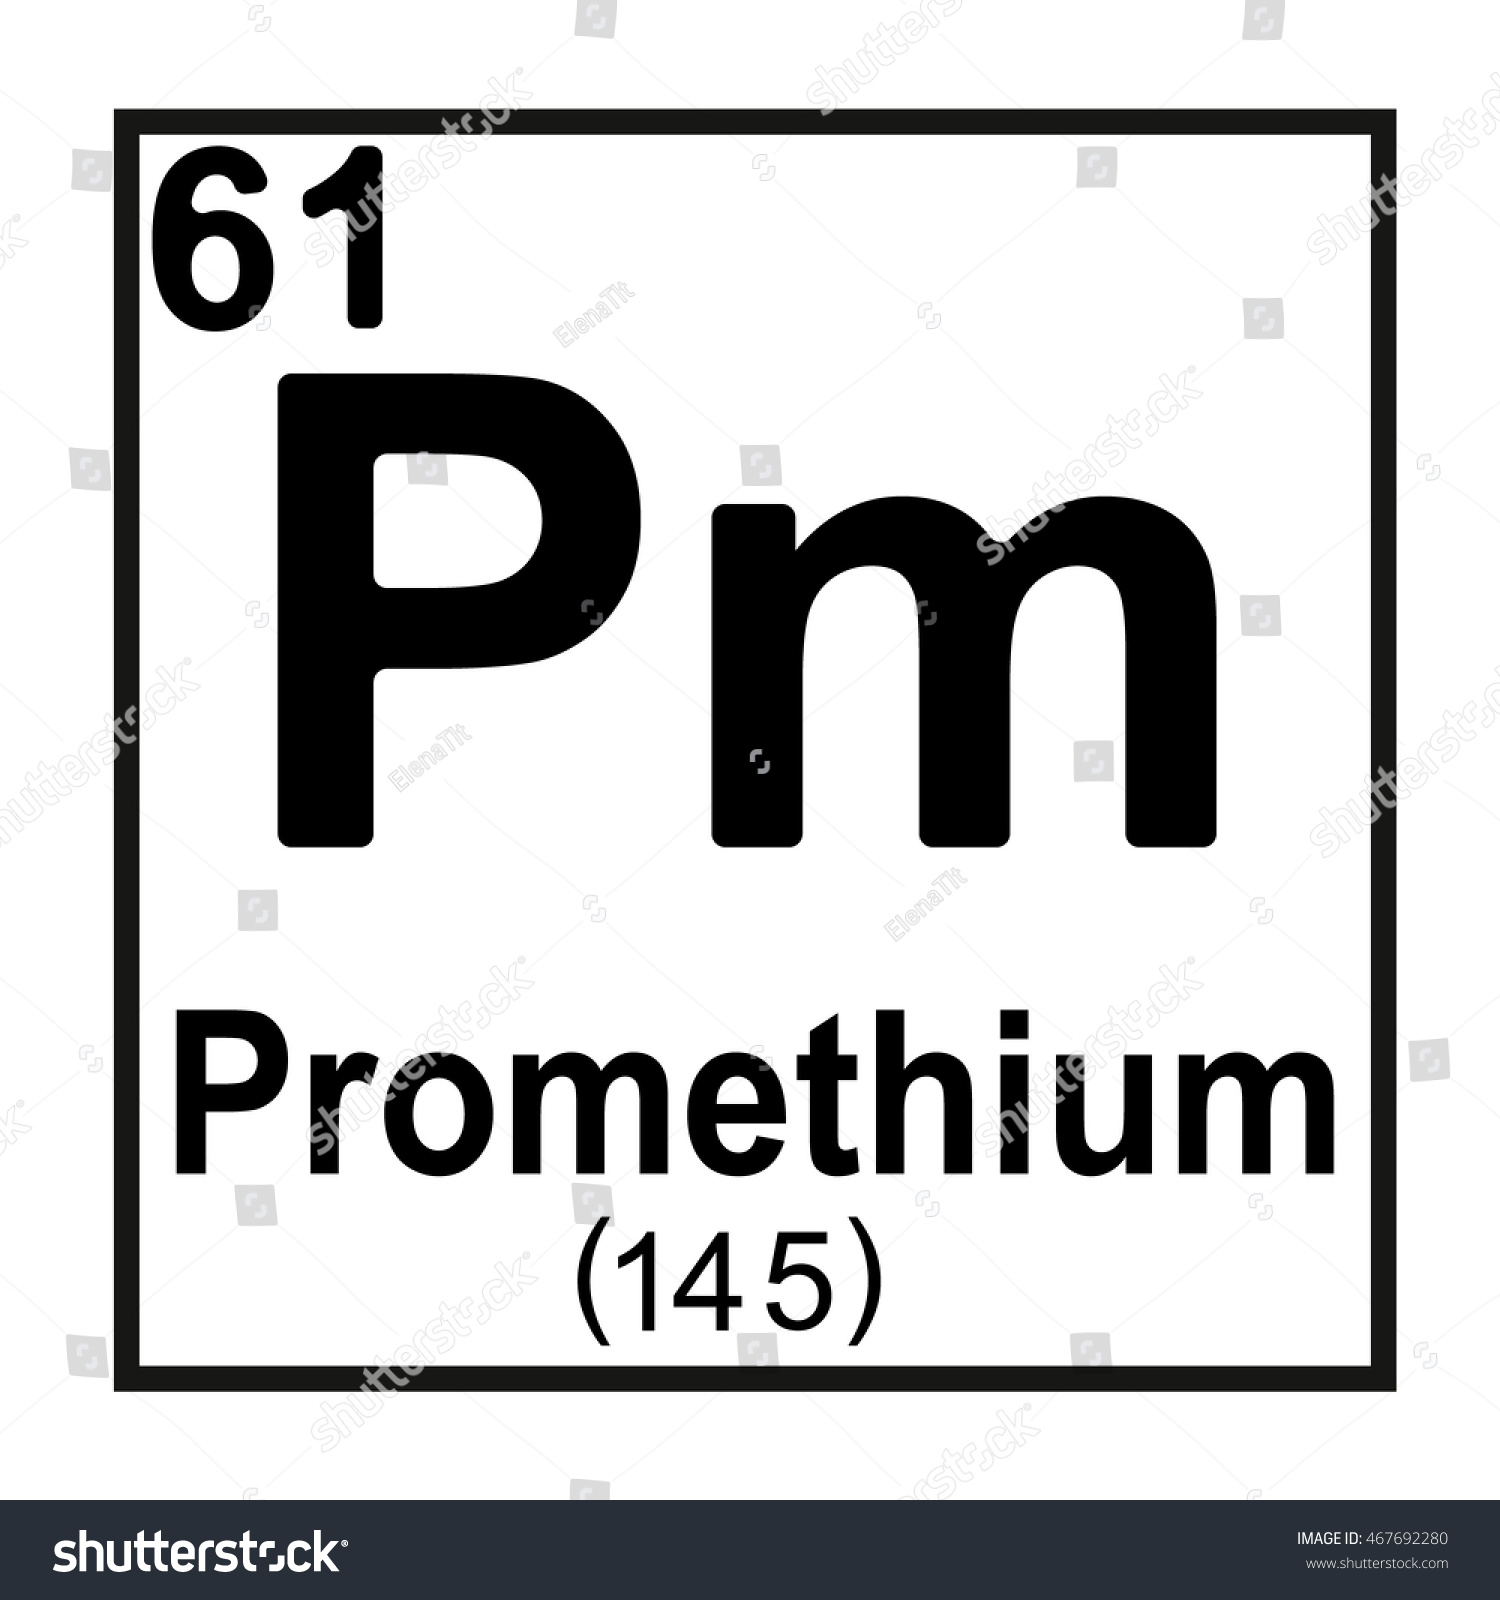 Periodic table element promethium stock vector 467692280 periodic table element promethium gamestrikefo Gallery